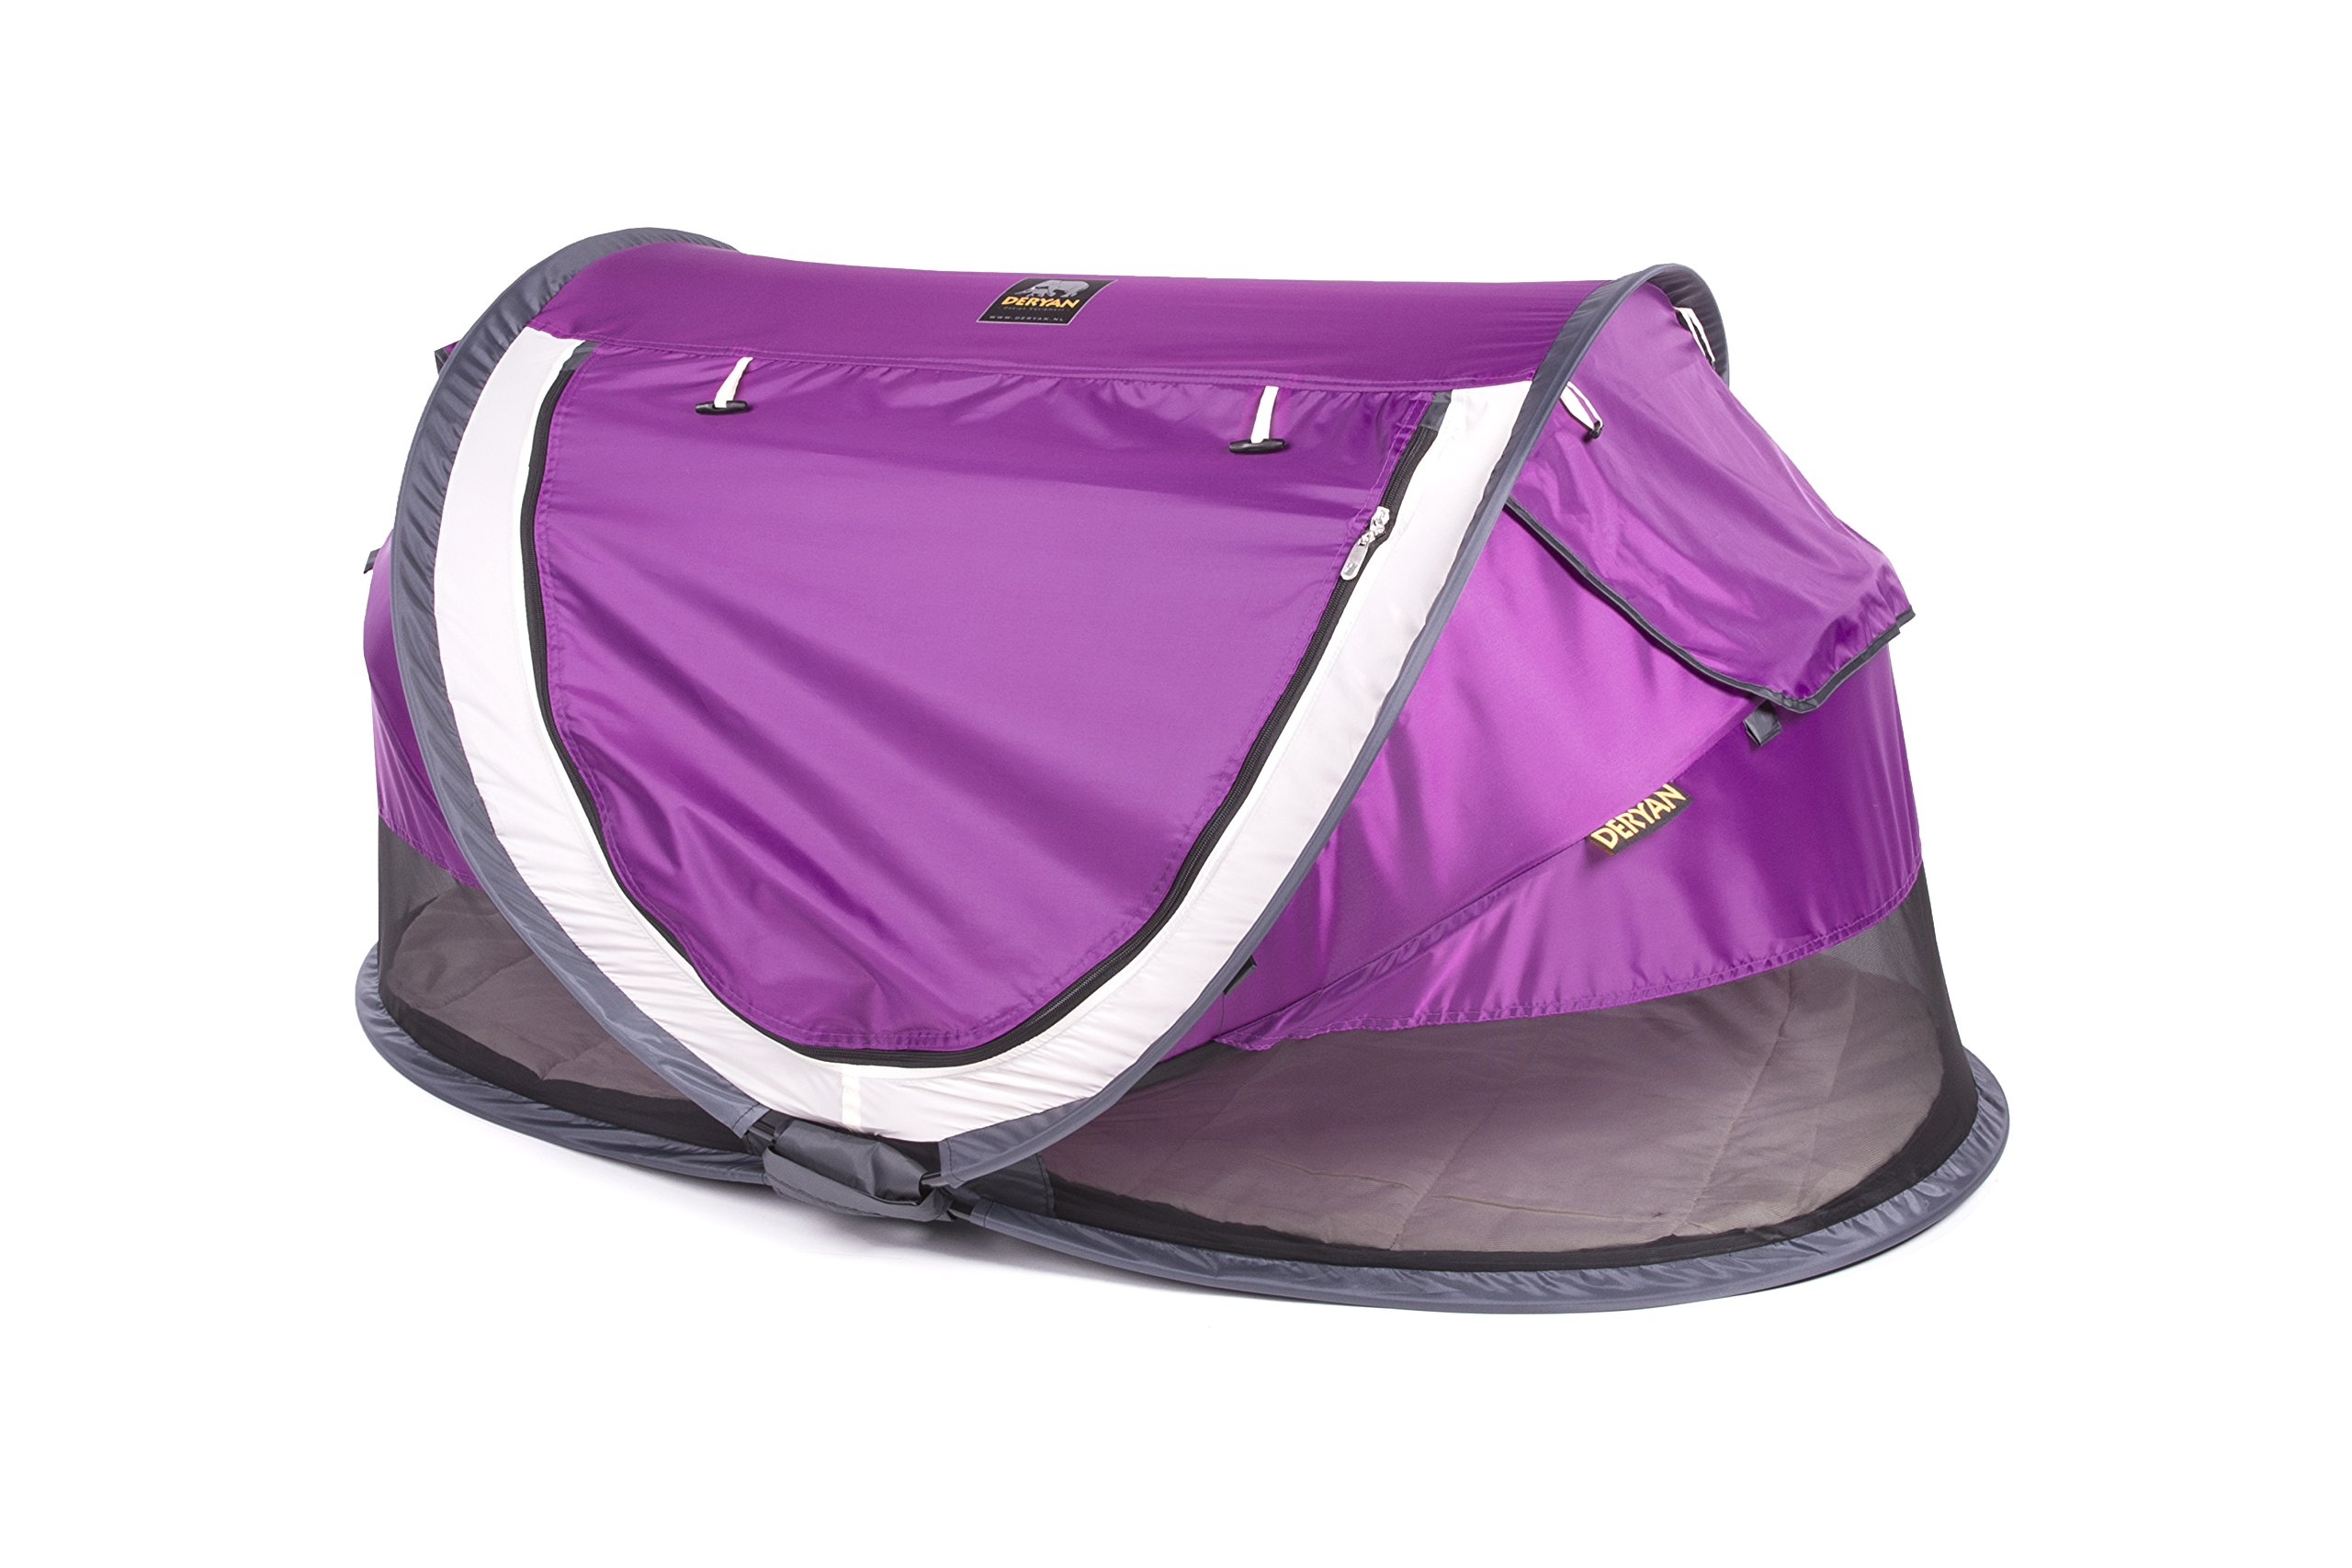 Travel Cot Peuter Luxe (Purple) Deryan 50% UV Protection and flame retardant fabric Setup in 2 seconds and a anti-musquito net  3